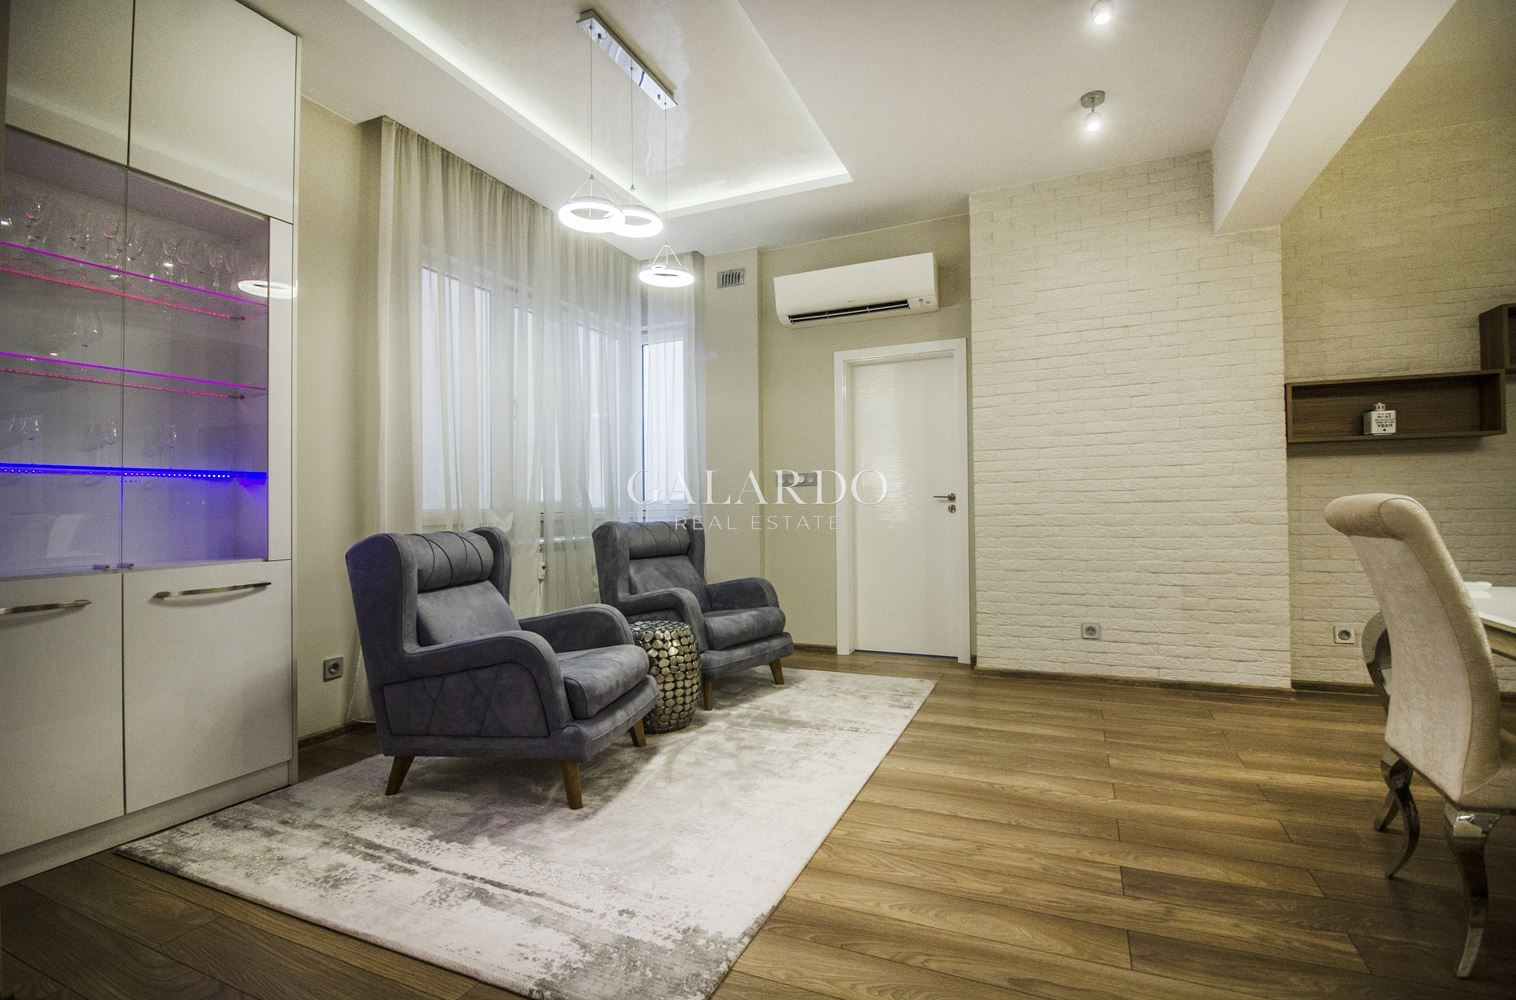 Exclusive fully furnished 2-bedroom apartment in the city center